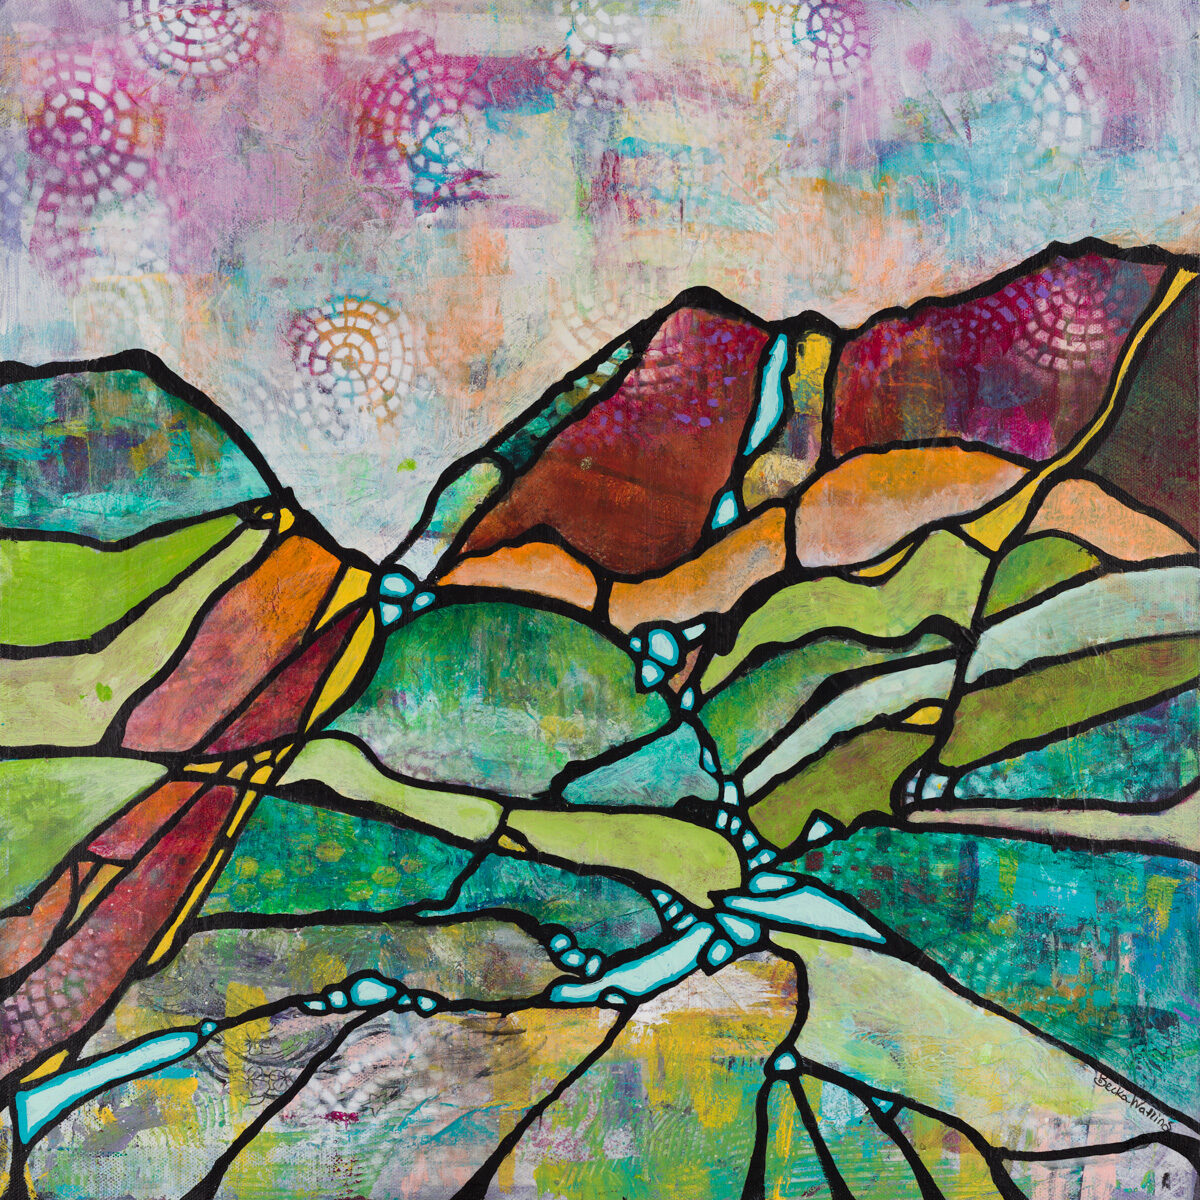 """Ridges and Rivers"" by Becka Watkins, 20x20"" wrapped canvas (no frame)"